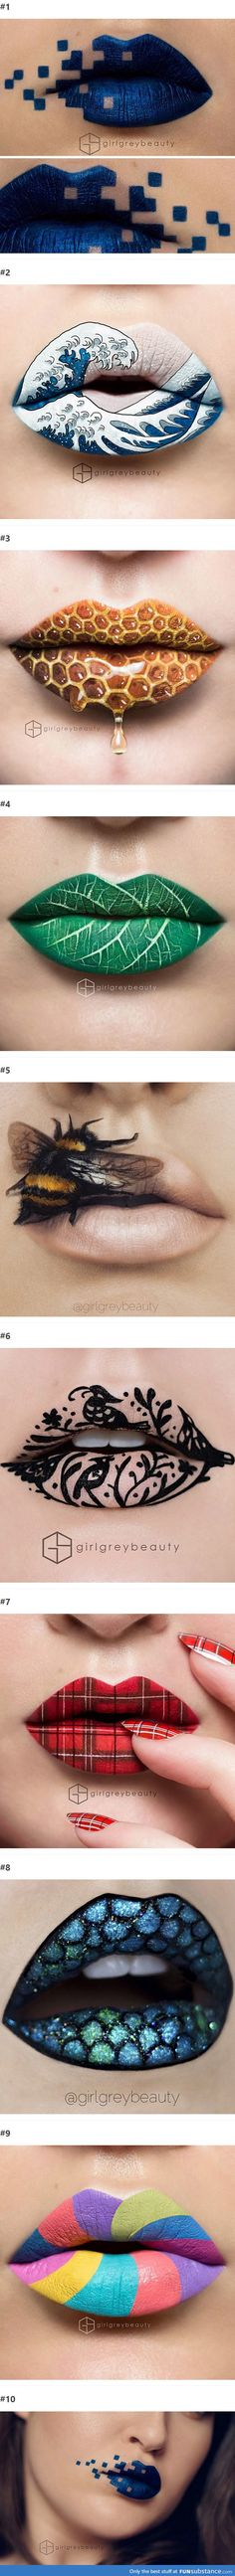 Makeup Artist Uses Her Lips To Create Stunning Art Pieces